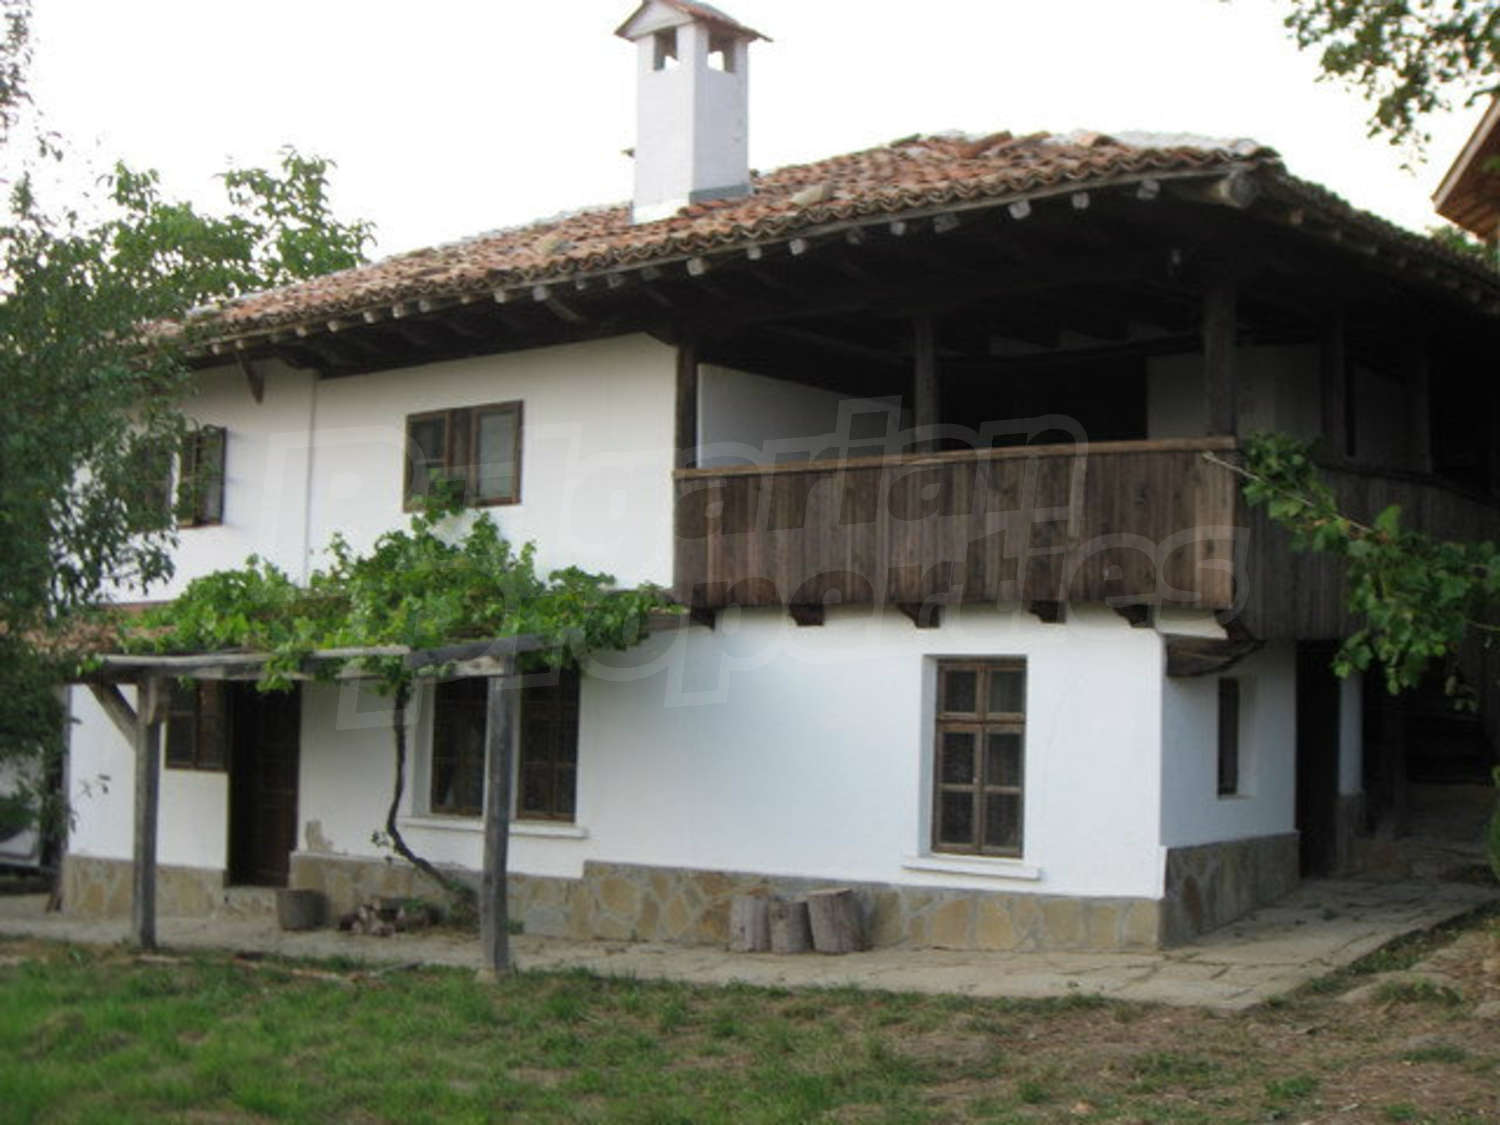 Property To Sell In Bulgaria